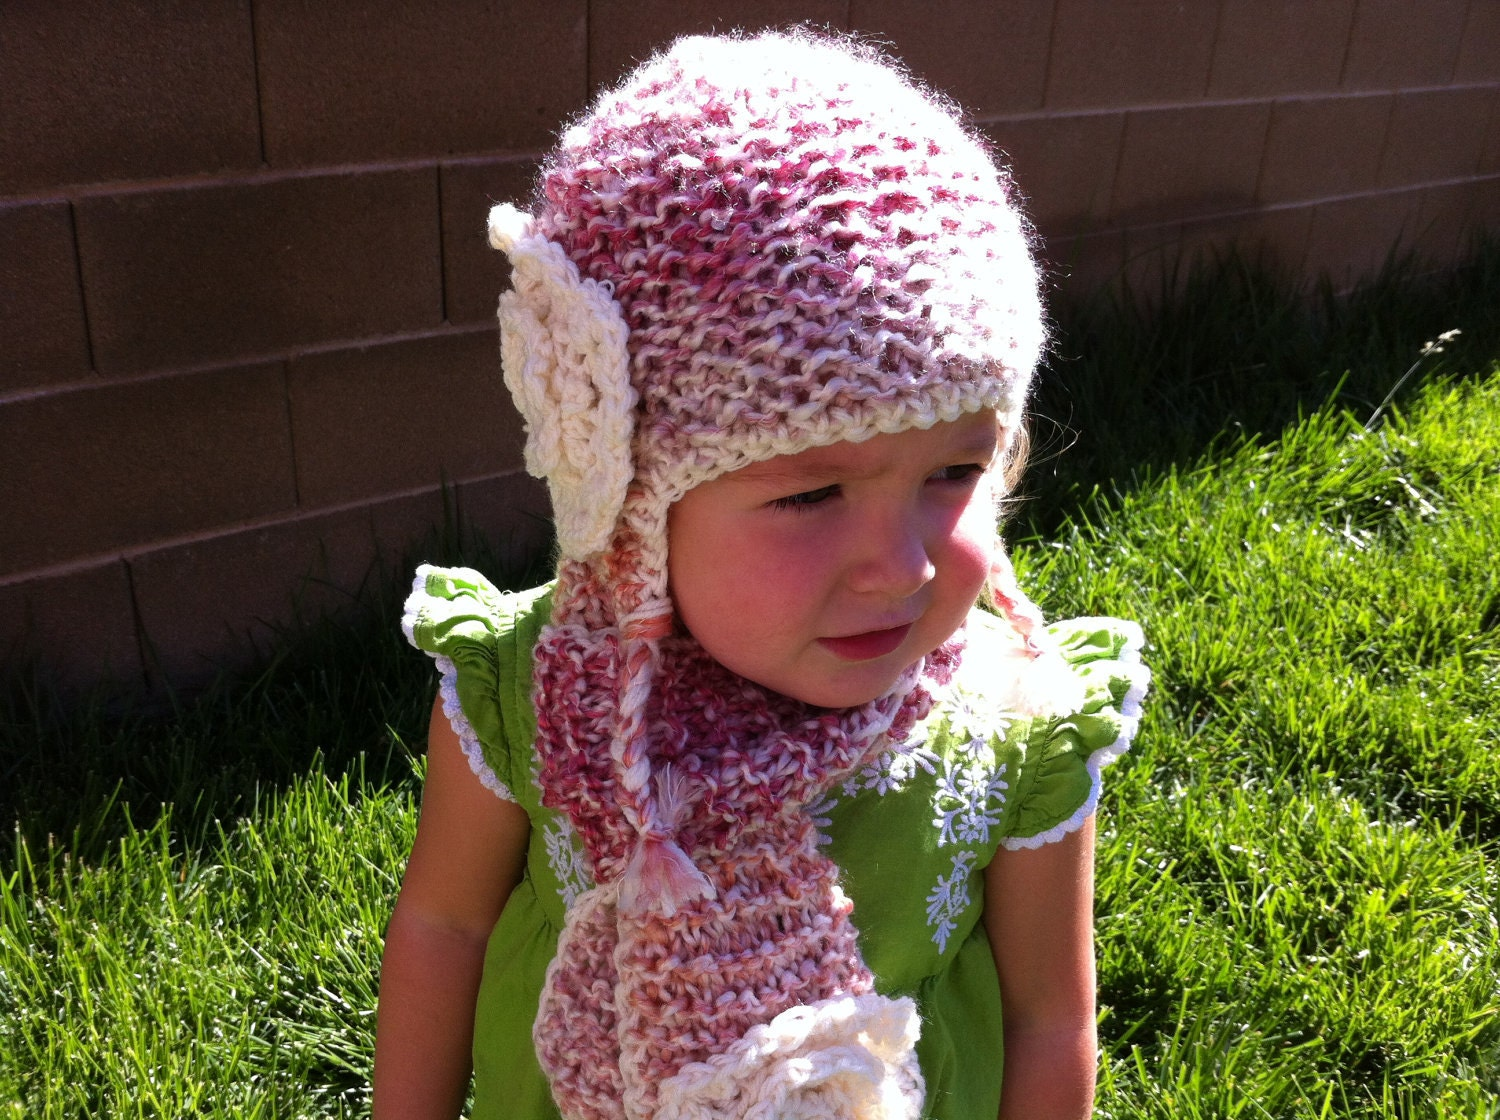 Children's Hand knitted hat, tassels and ear flaps with a large crochet flower - Color shown is Parfait